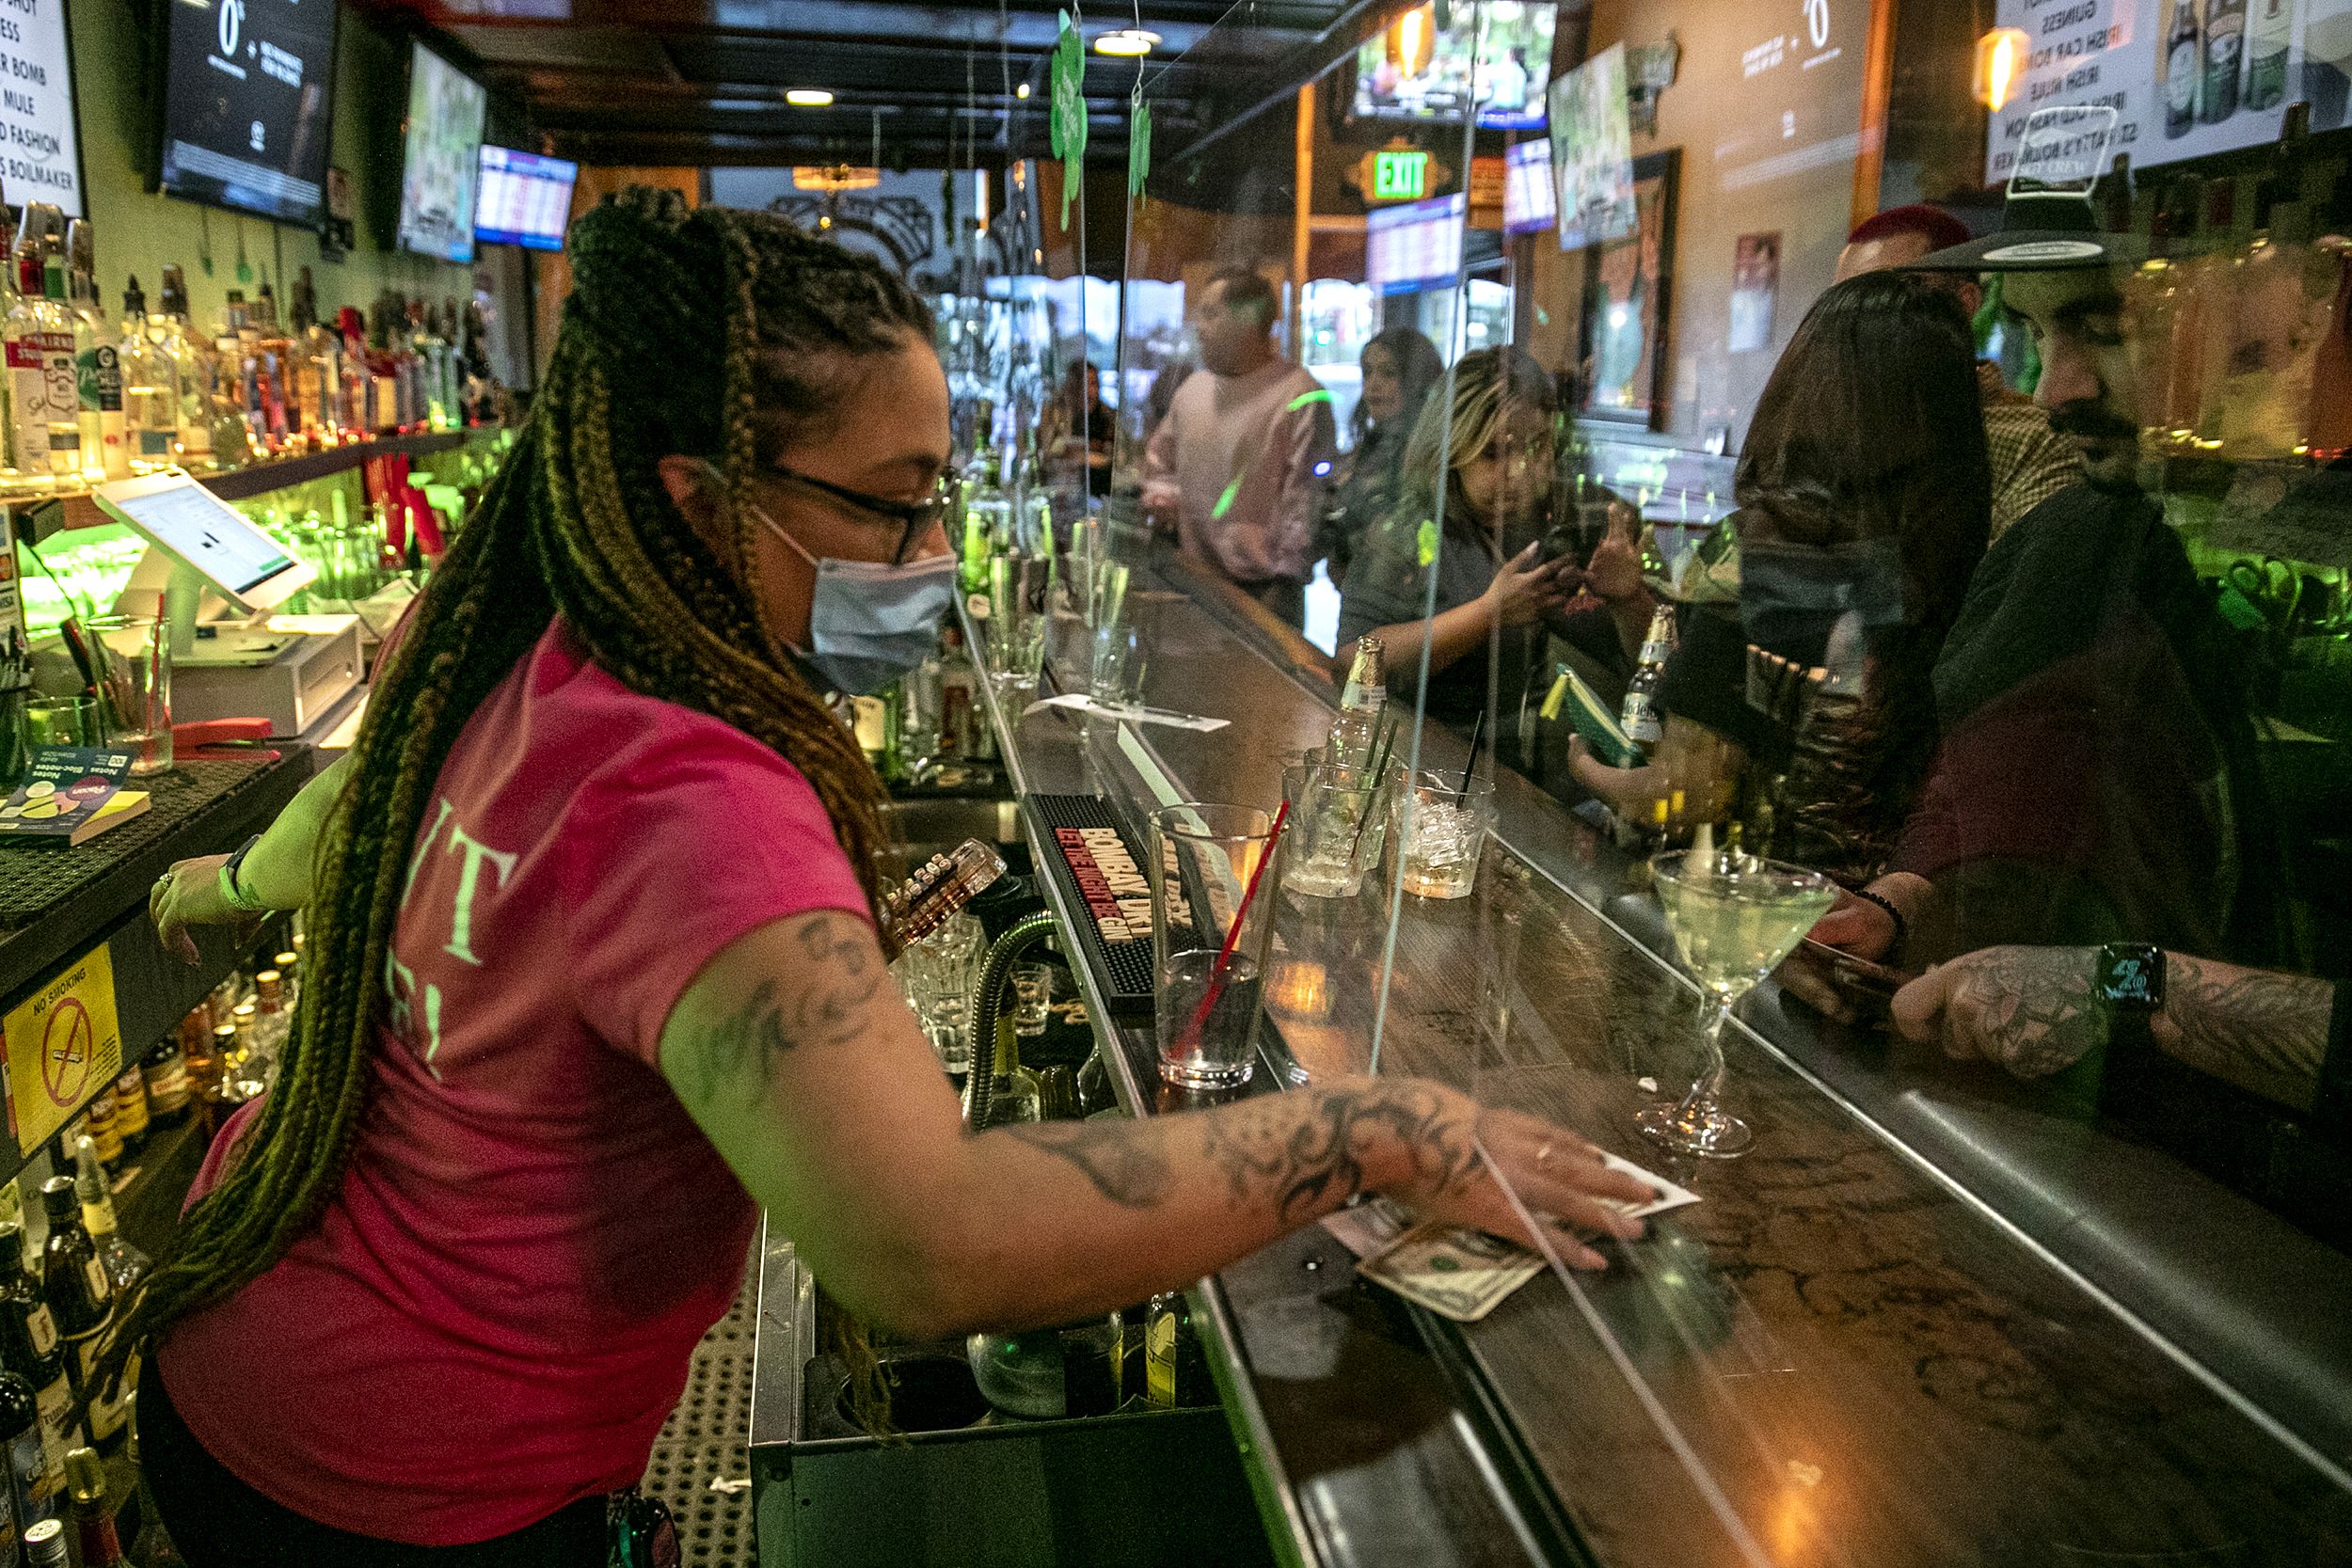 California governor orders indoor operations at bars and other venues in 19 counties to close